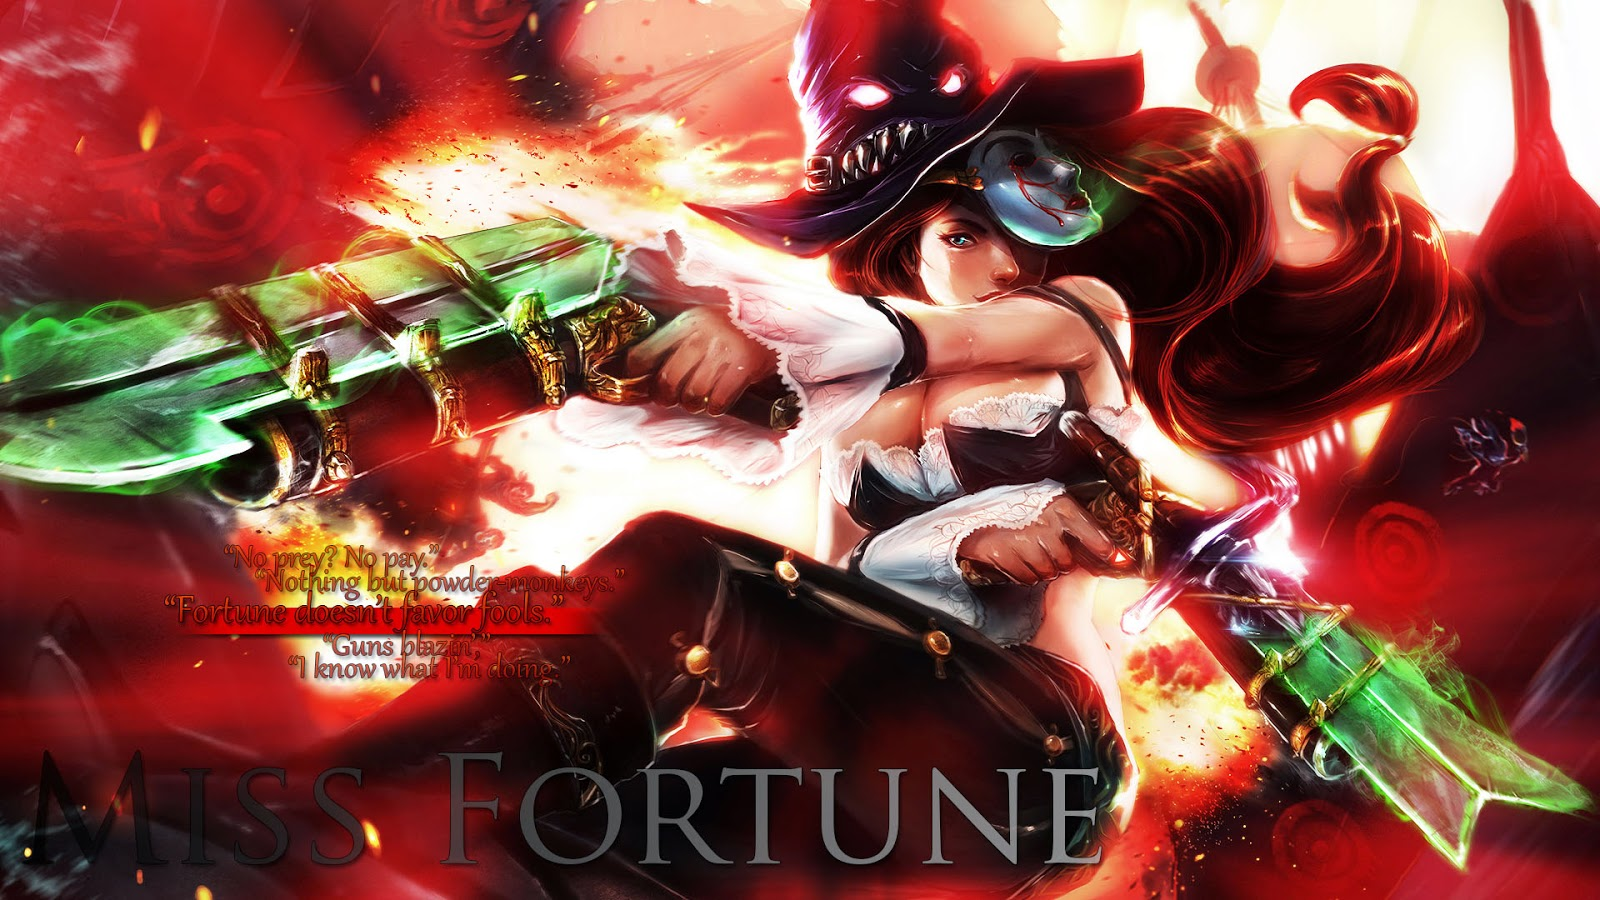 miss fortune league of legends wallpaper miss fortune